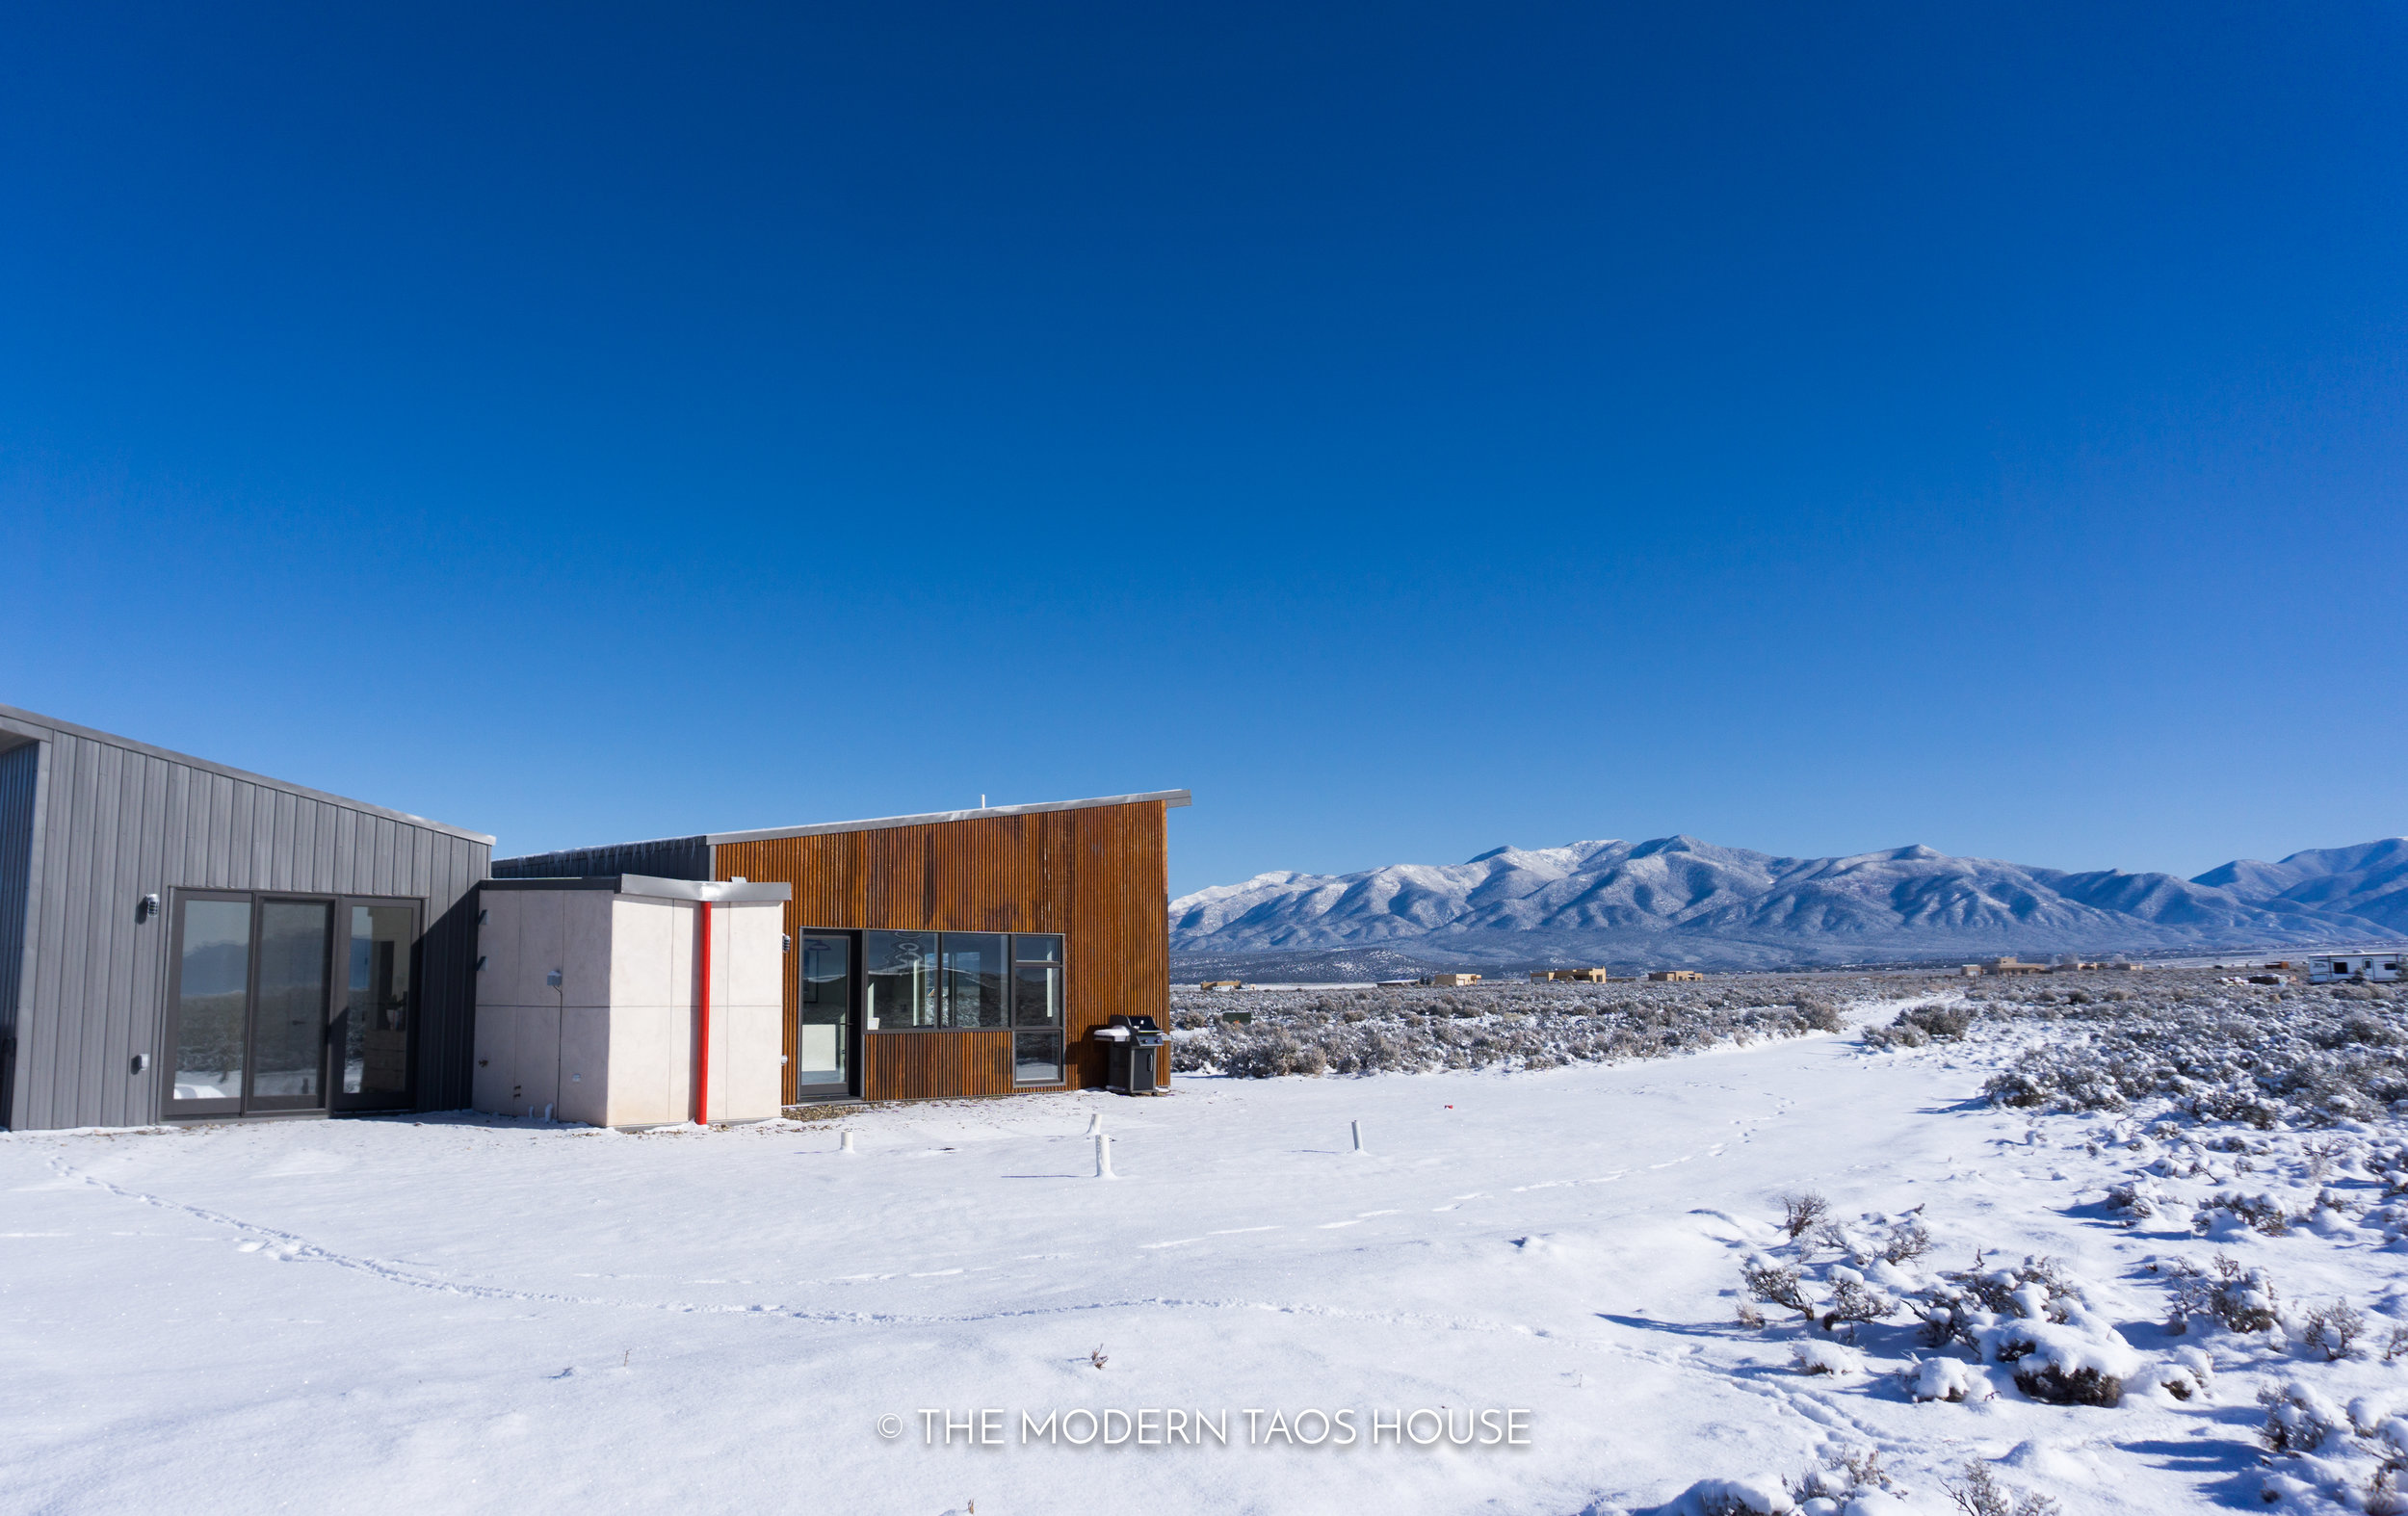 The modern taos house an off the grid luxury rental located in taos